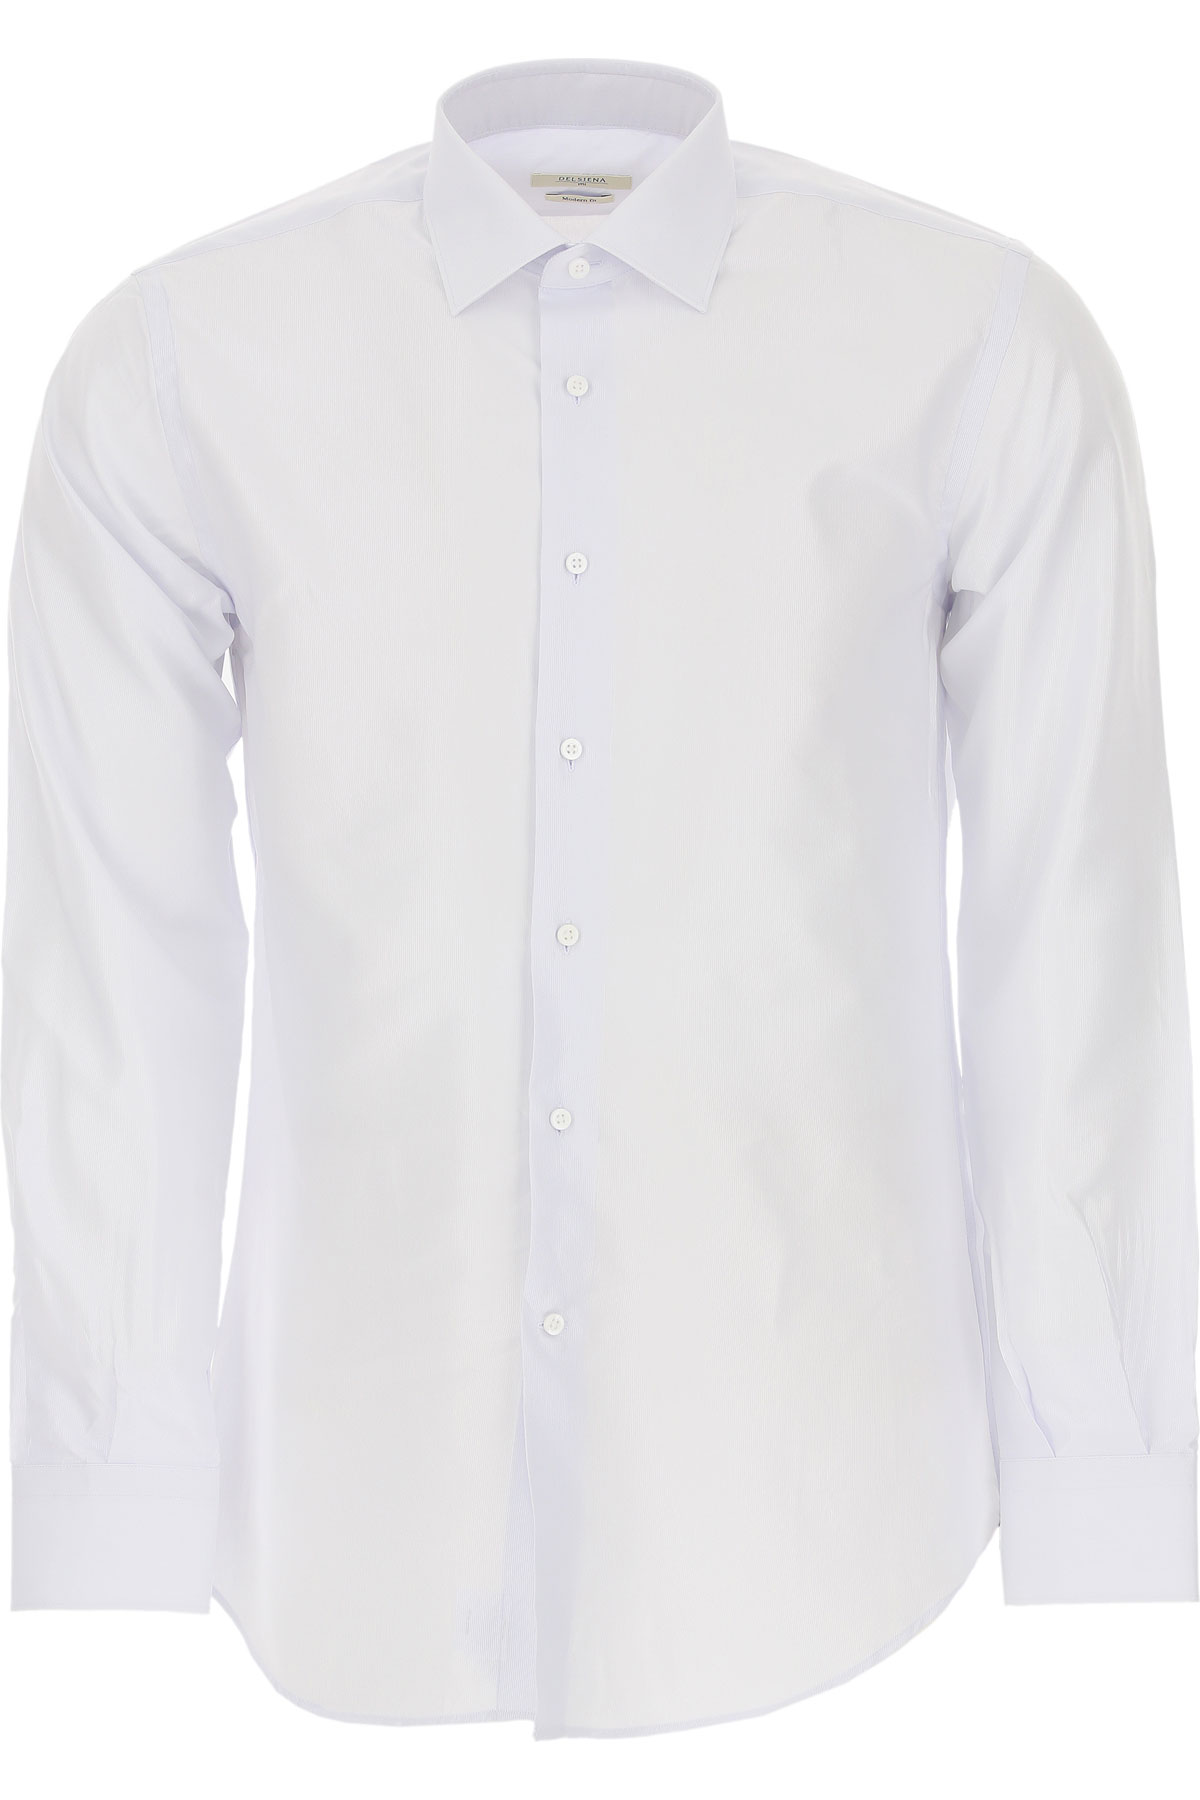 Del Siena Shirt for Men On Sale, Ice Grey, Cotton, 2019, 15.75 17.5